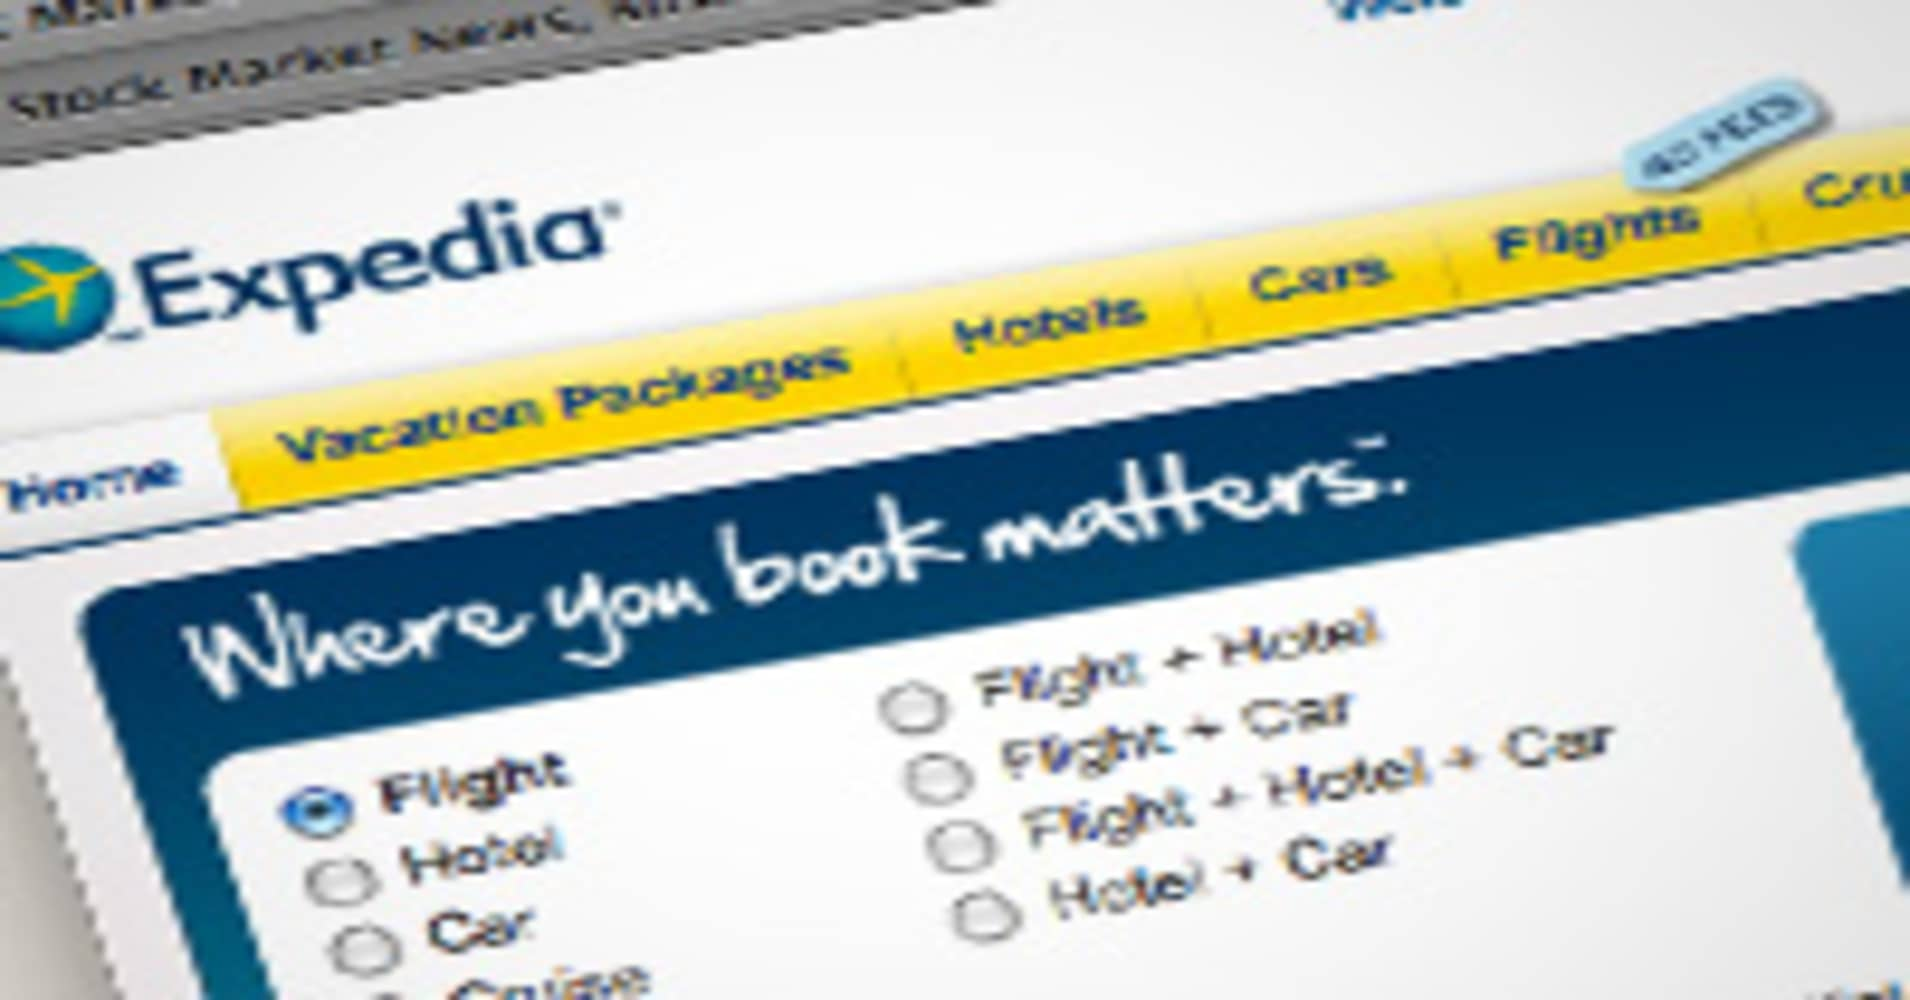 Expedia Warns Of Lower Hotwire Profit